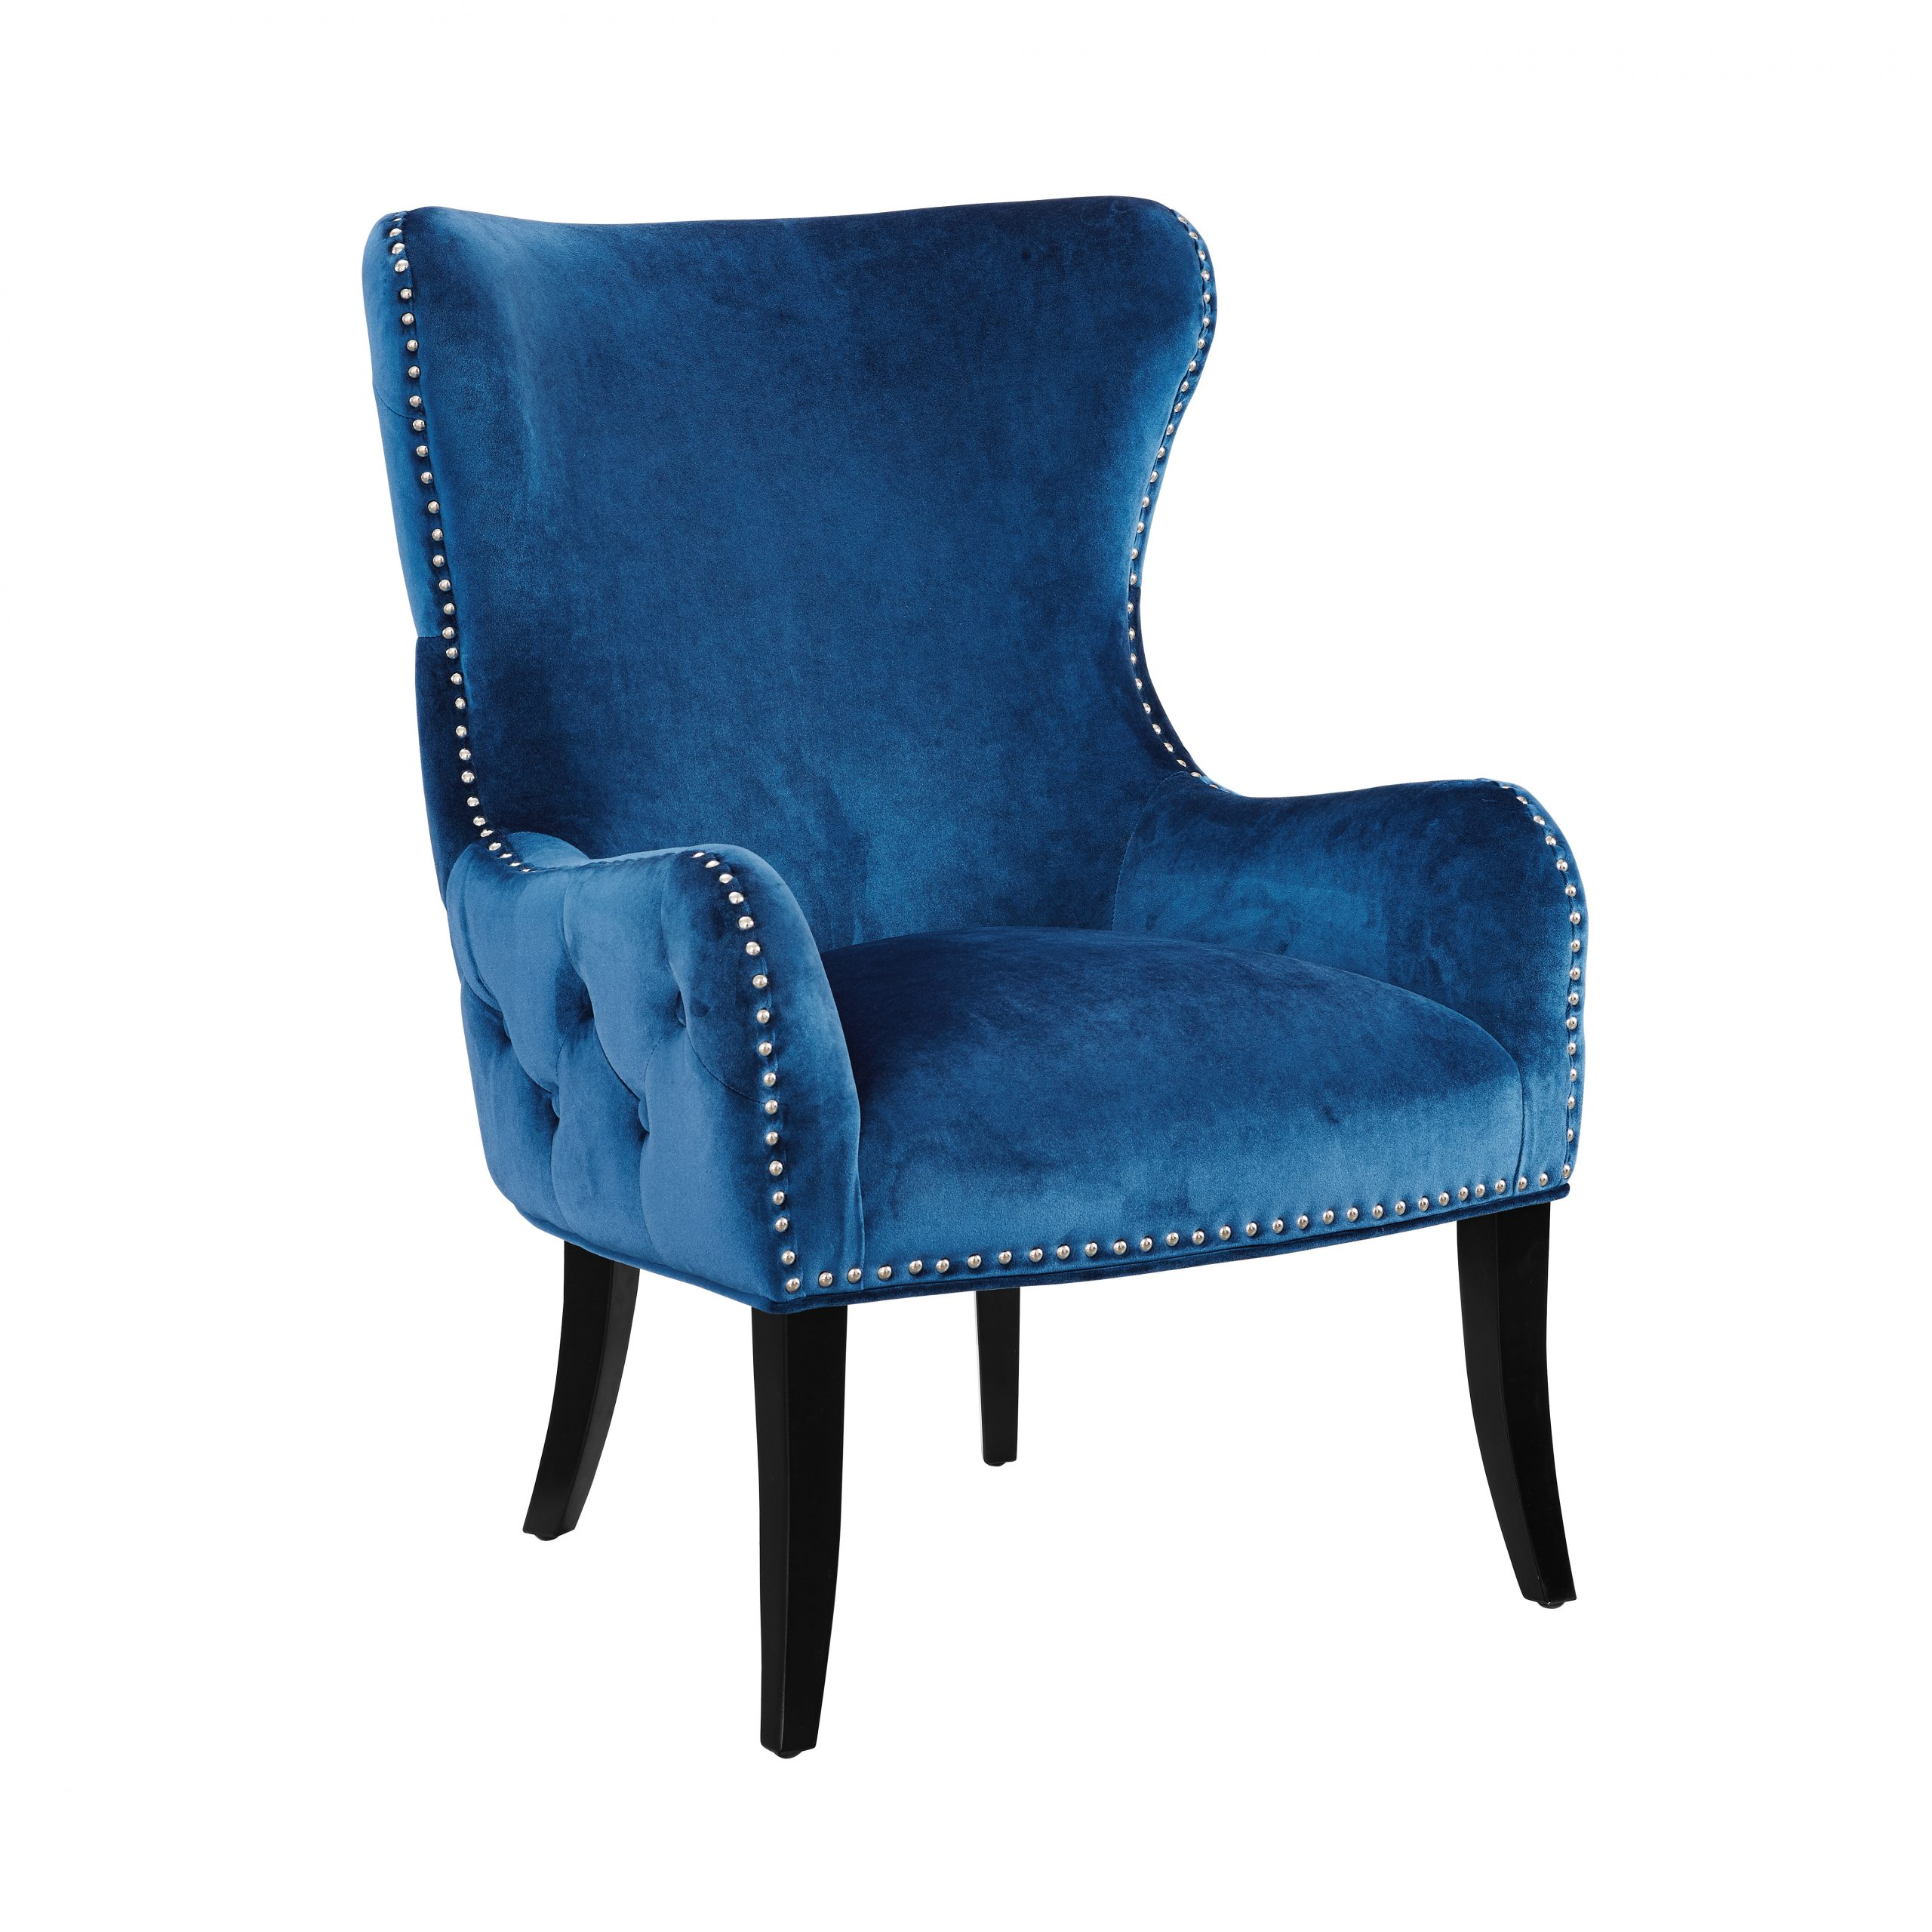 Blue Wingback Accent Chairs You'Ll Love In 2021 | Wayfair With Busti Wingback Chairs (View 13 of 15)